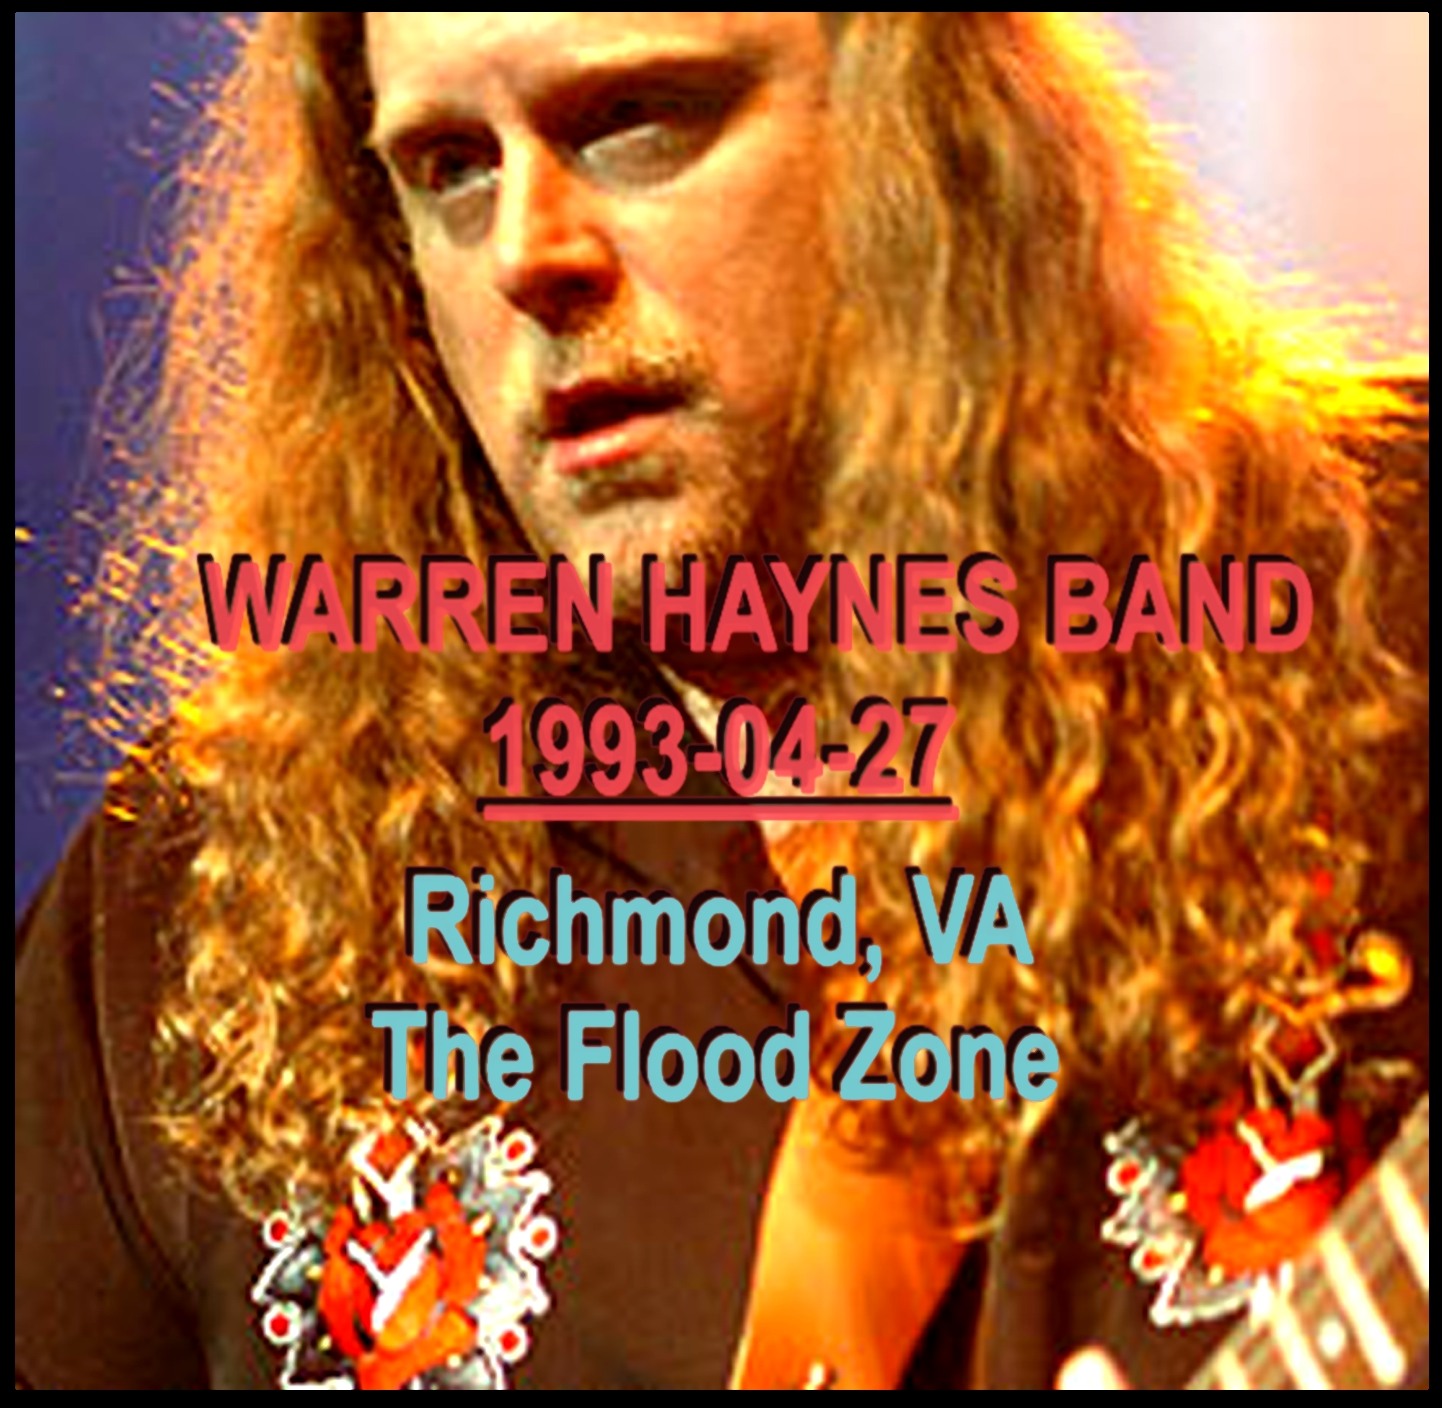 WarrenHaynesBand1993-04-27TheFloodZoneRichmondVA (8).jpg